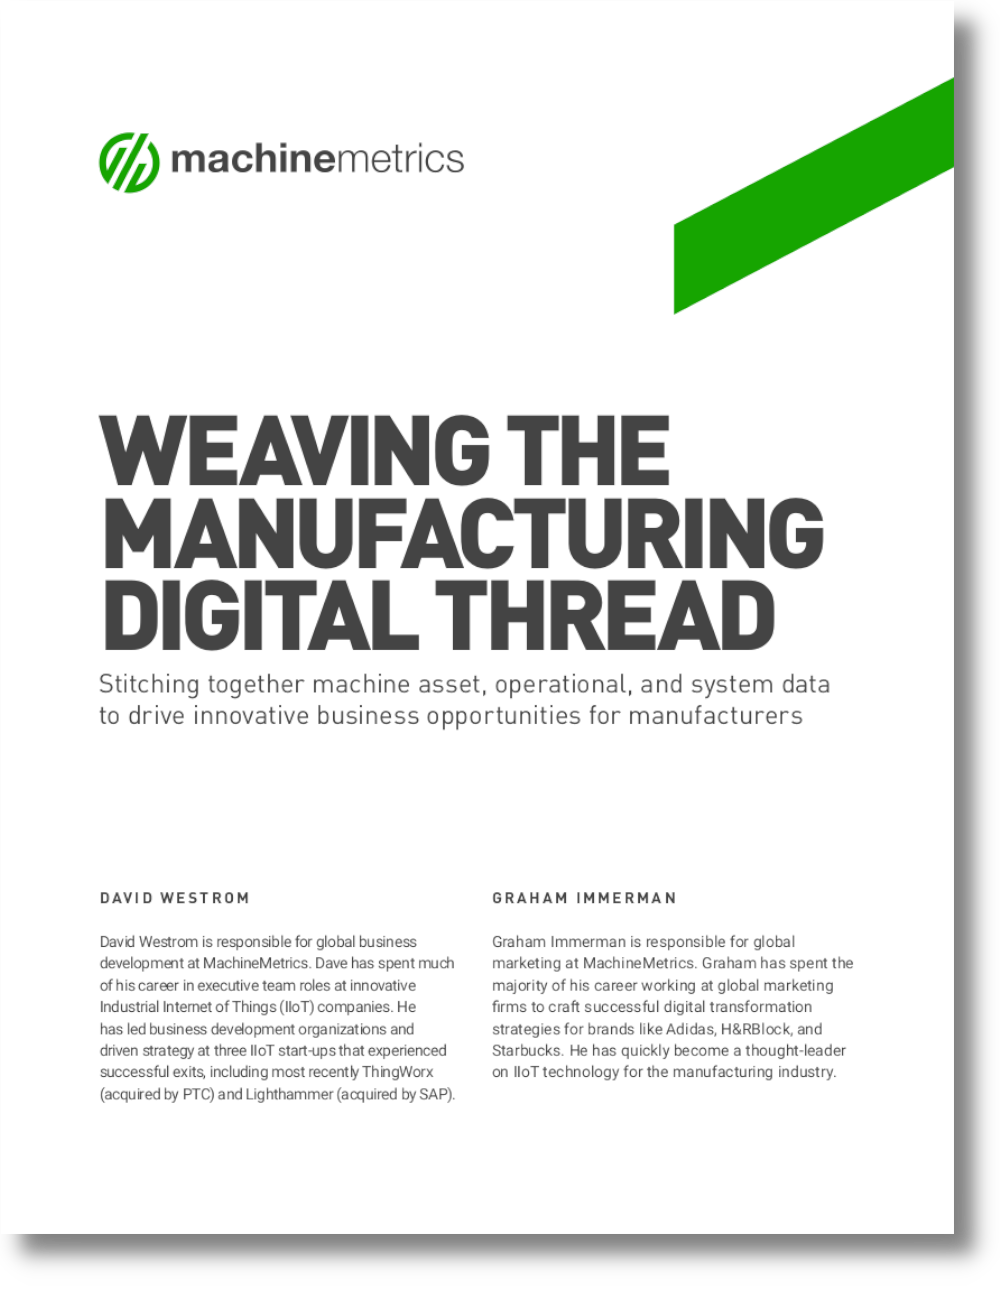 Weaving the Manufacturing Digital Thread White Paper